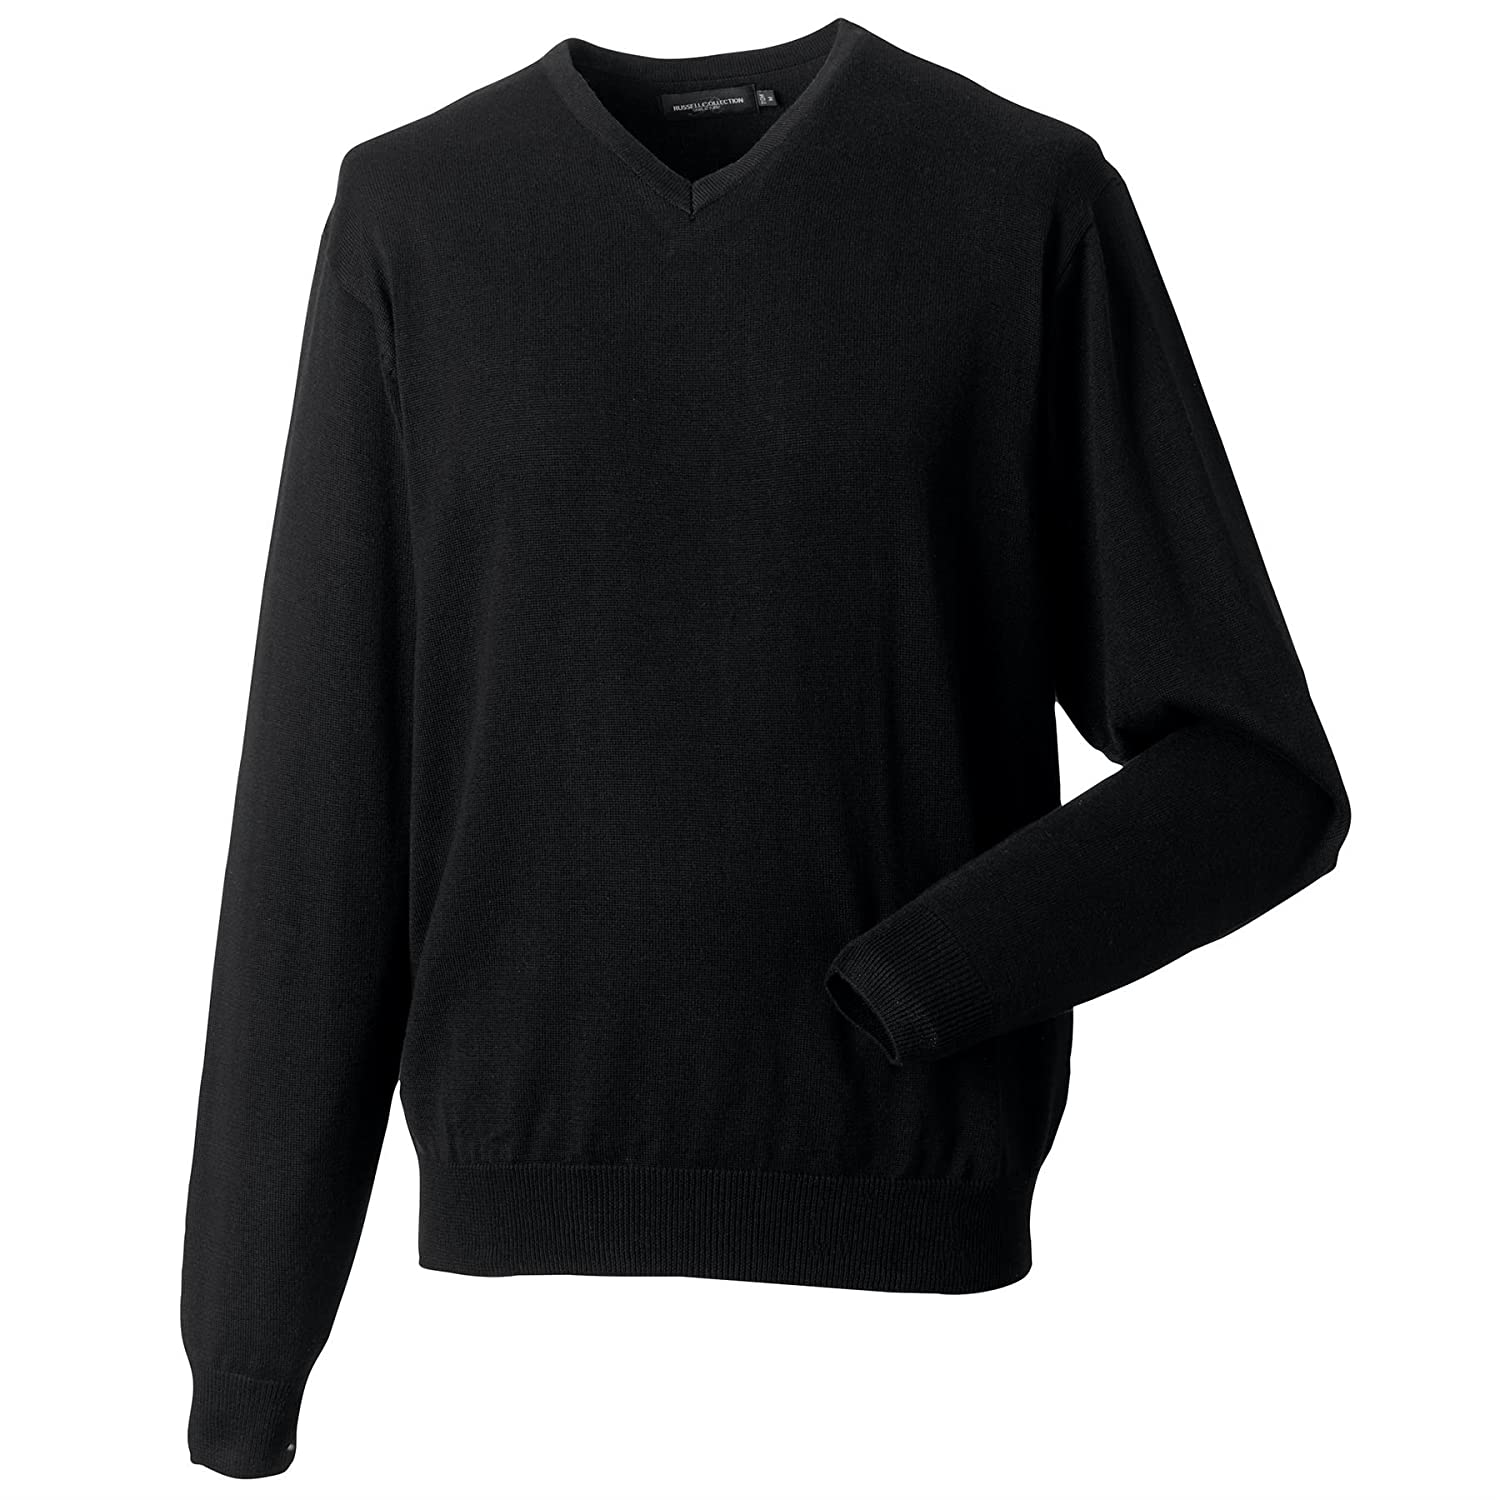 Russell Collection-Mens V-neck knitted sweater